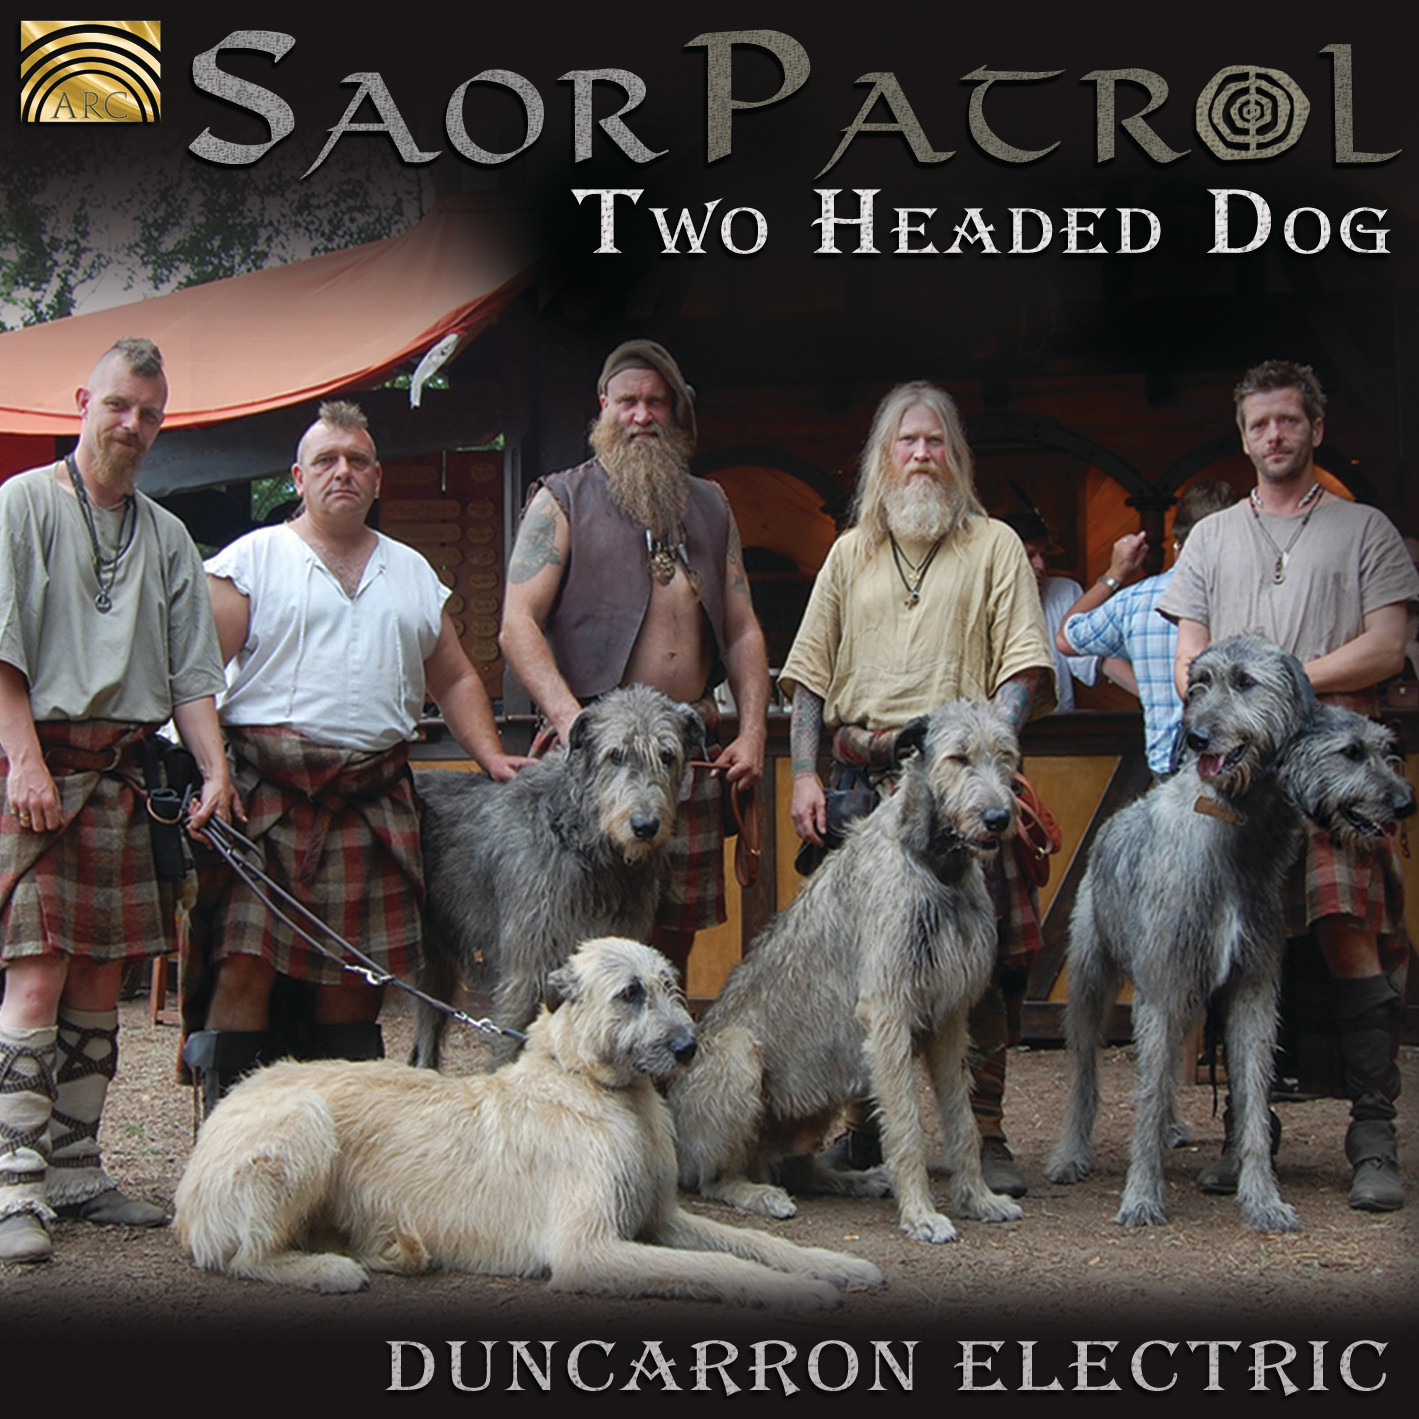 EUCD2395 Two Headed Dog - Duncarron Electric